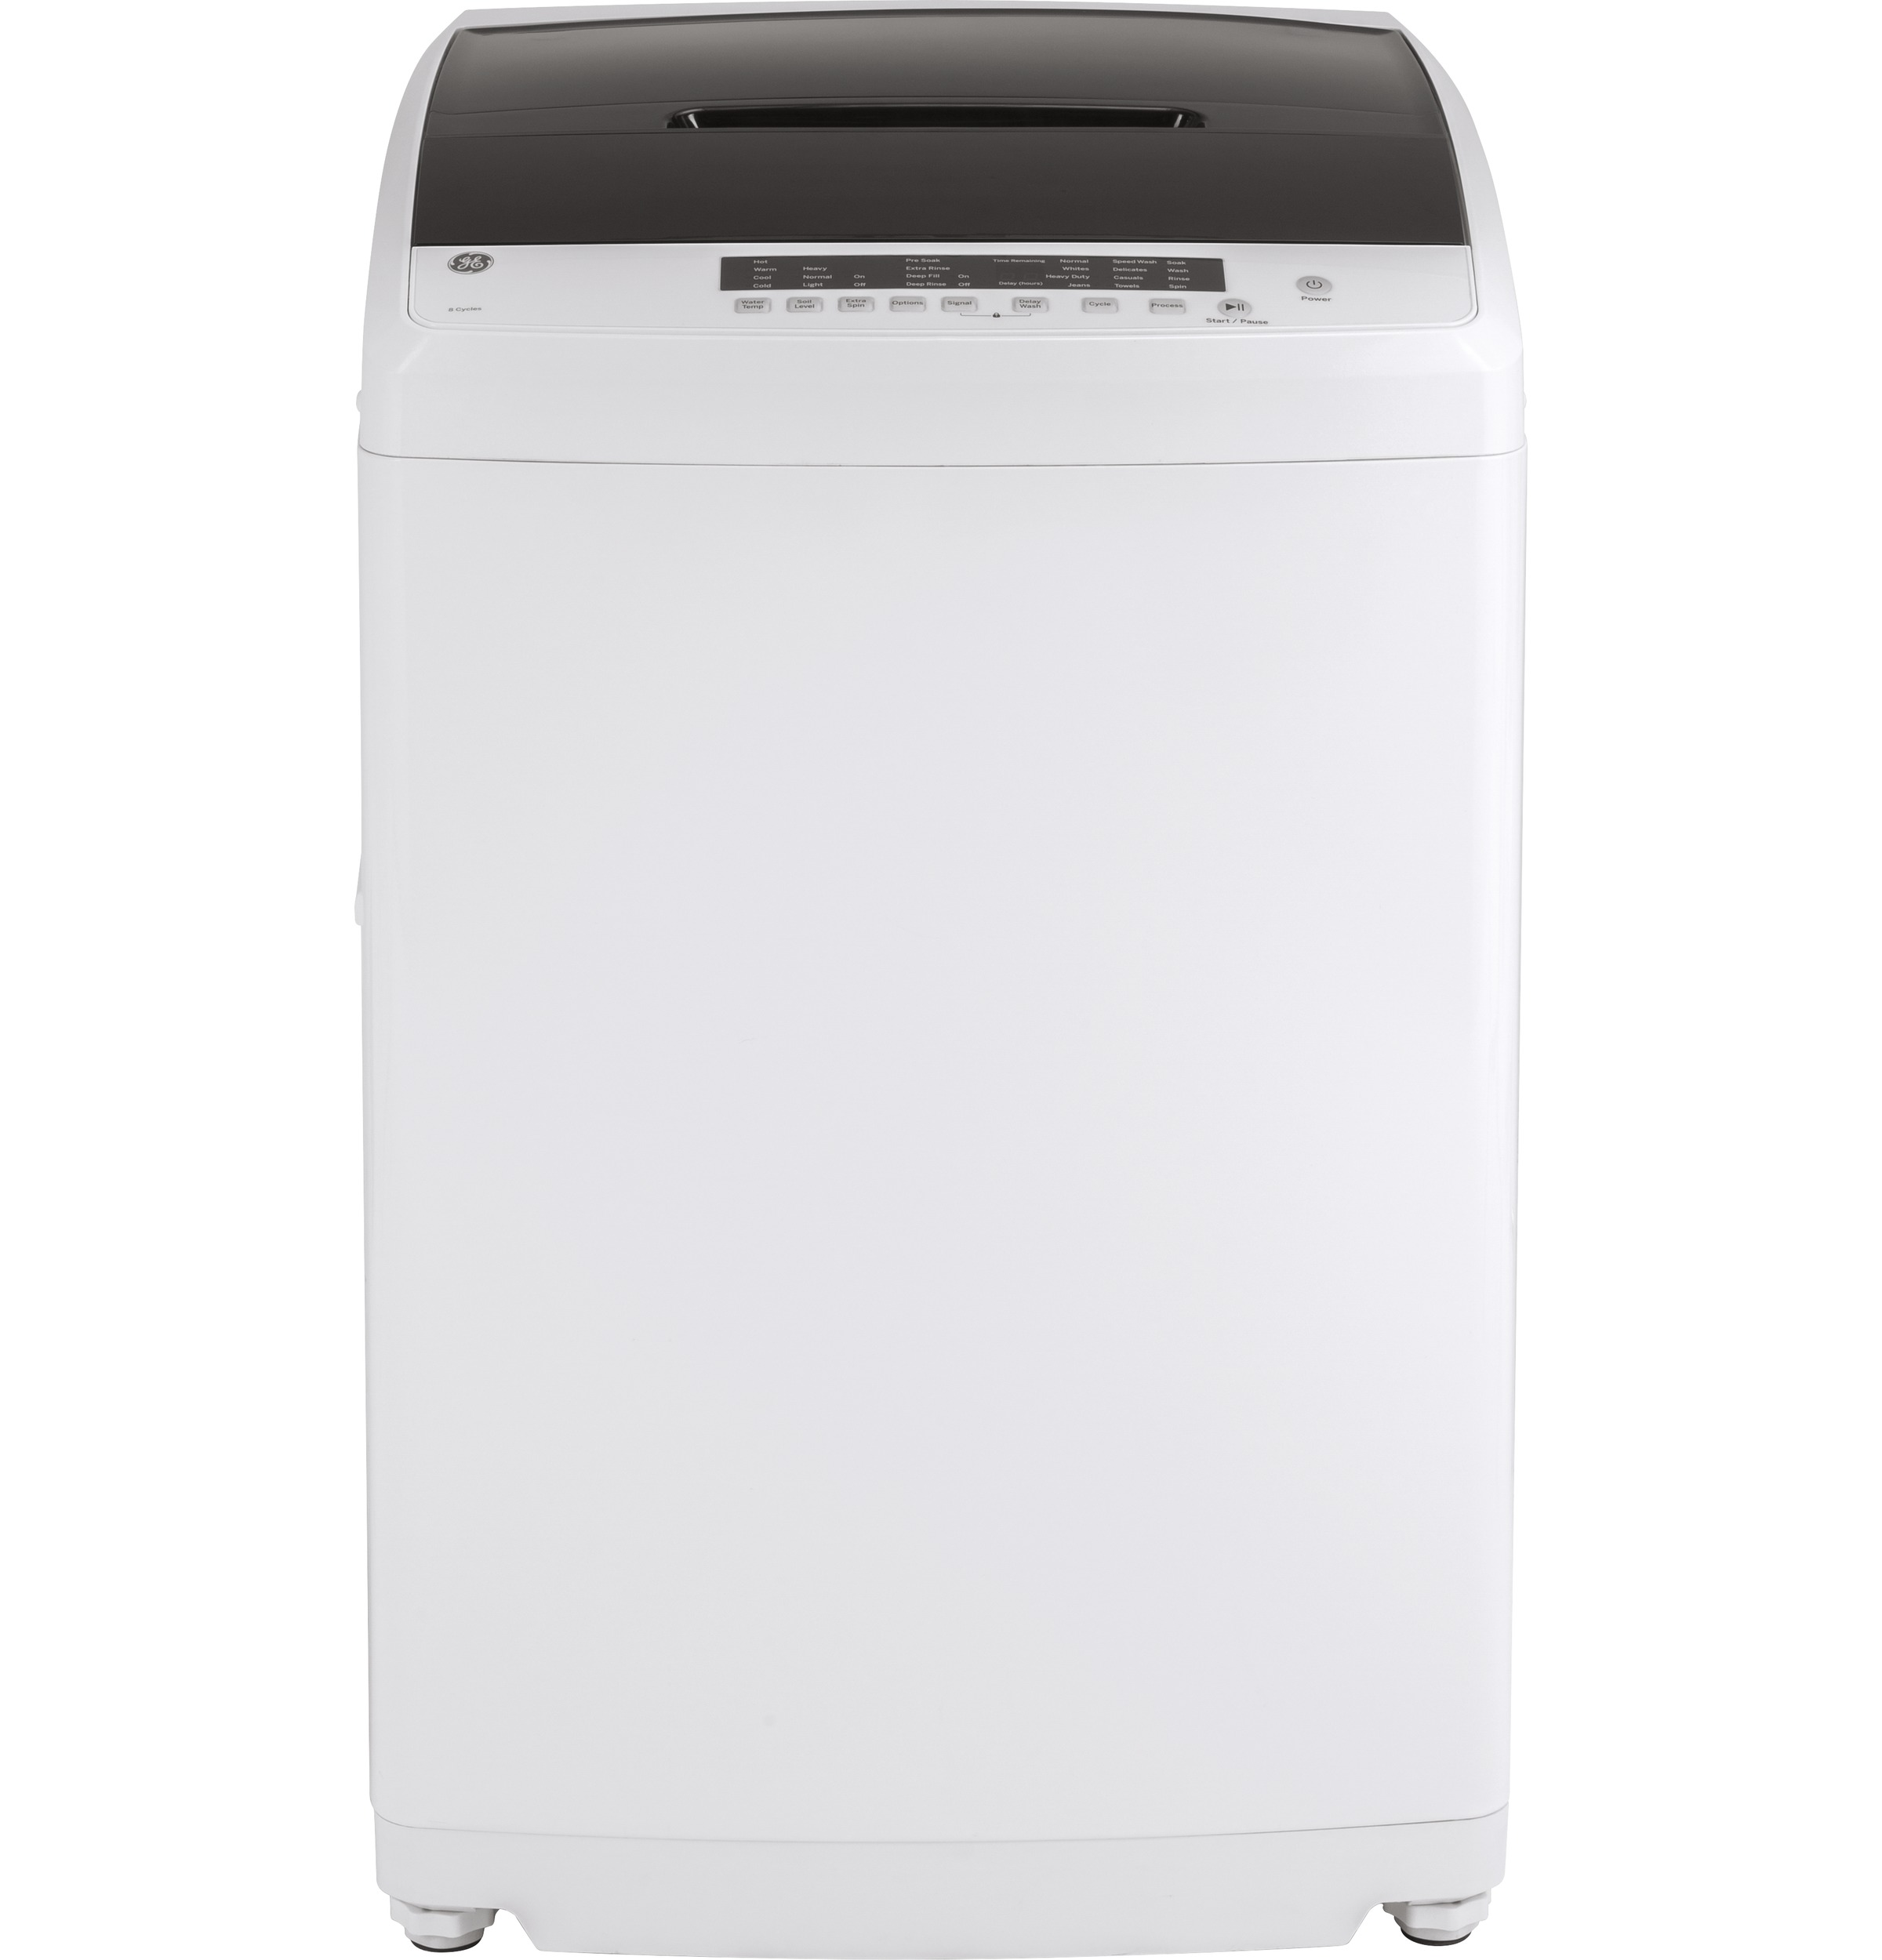 GE GE® Space-Saving 2.8 cu. ft. Capacity Portable Washer with Stainless Steel Basket